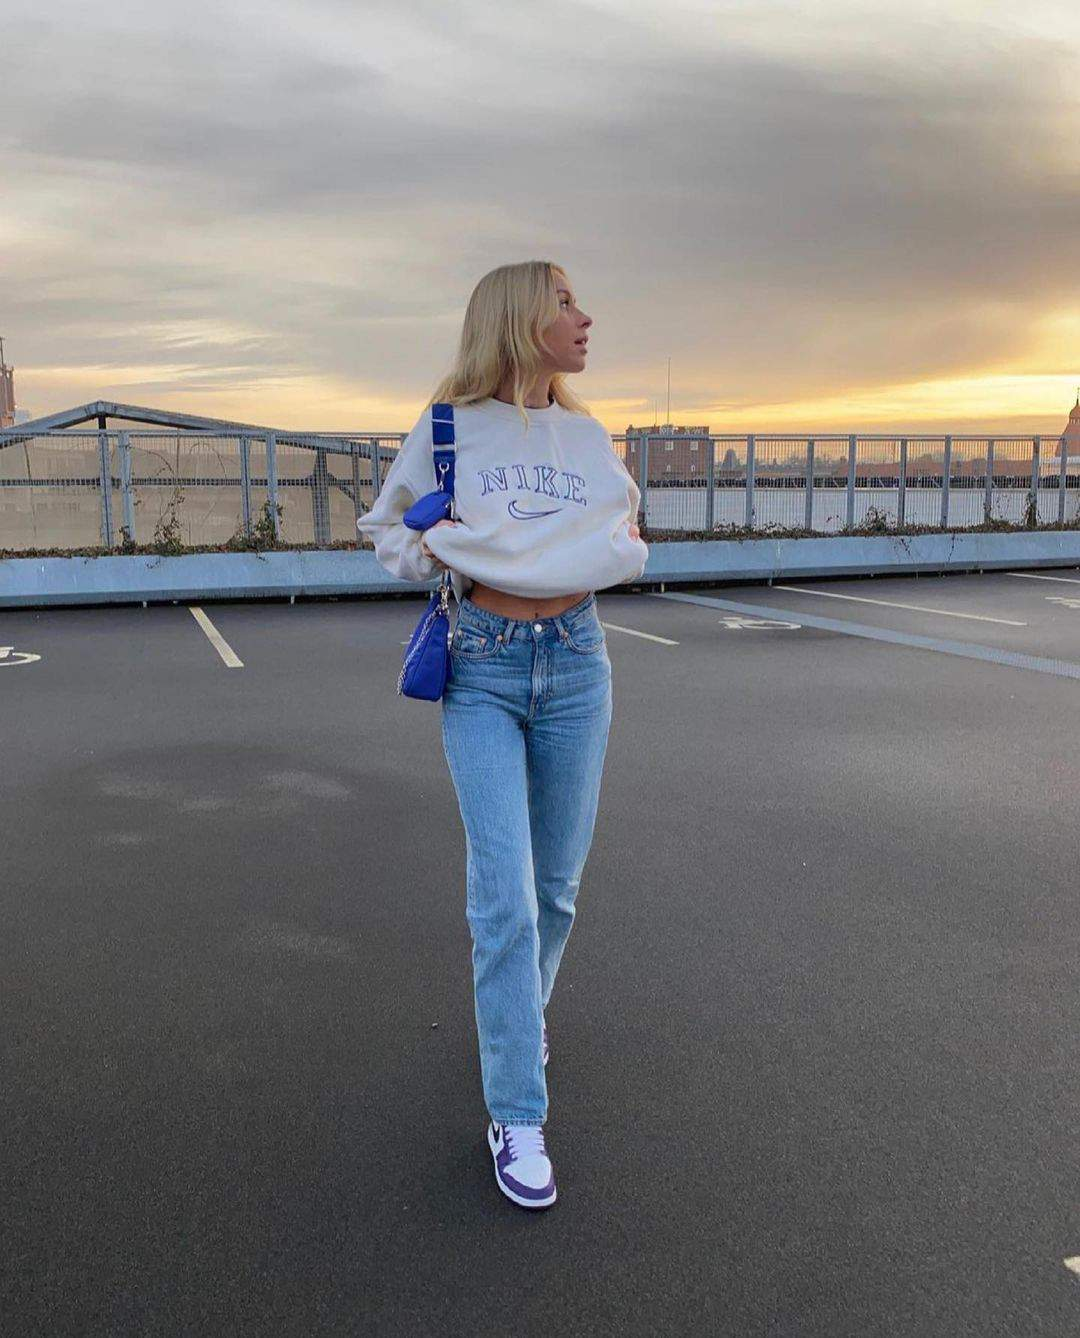 Best Women Fall Street Style Inspiration For 2021 images 3